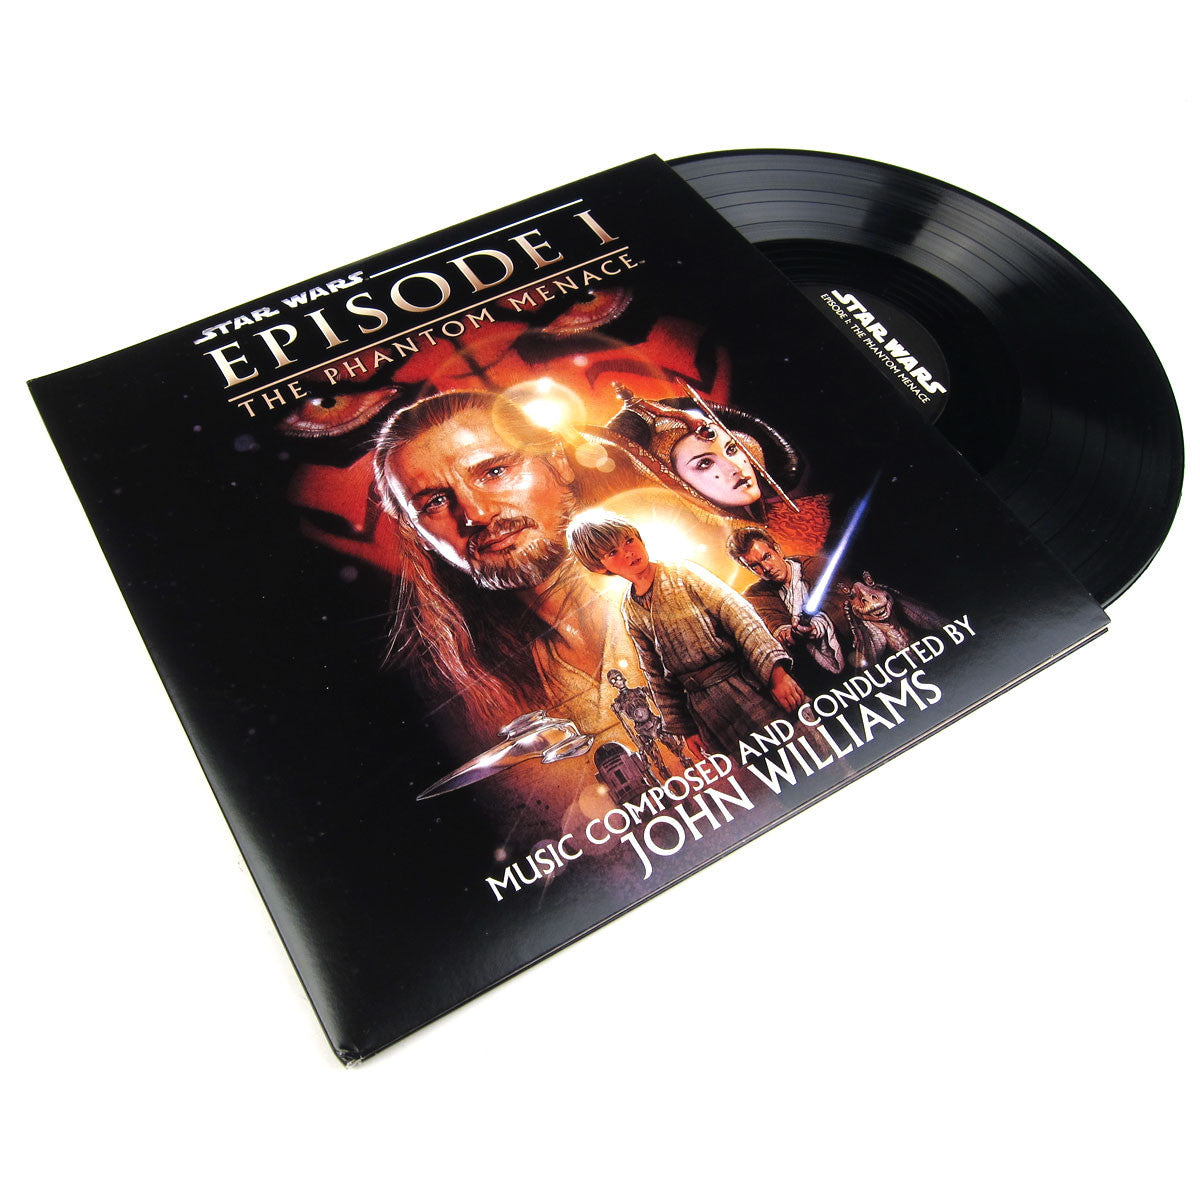 John Williams: Star Wars Episode 1 - The Phantom Menace Soundtrack Vinyl 2LP